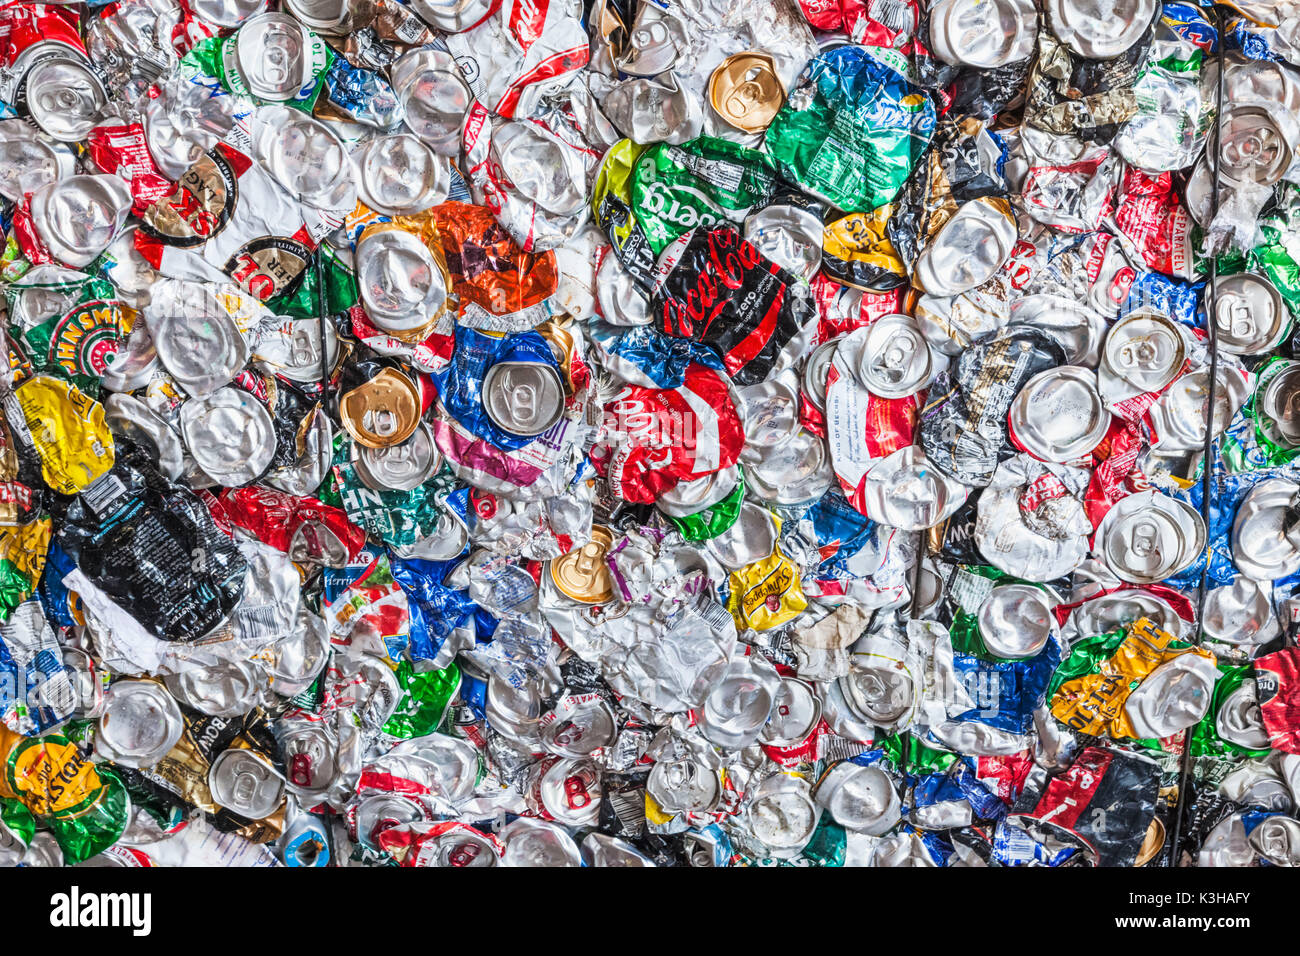 England, London, Southwark Intergrated Waste Management Facility, Waste Recycling, Detail of Compressed Metal Can - Stock Image